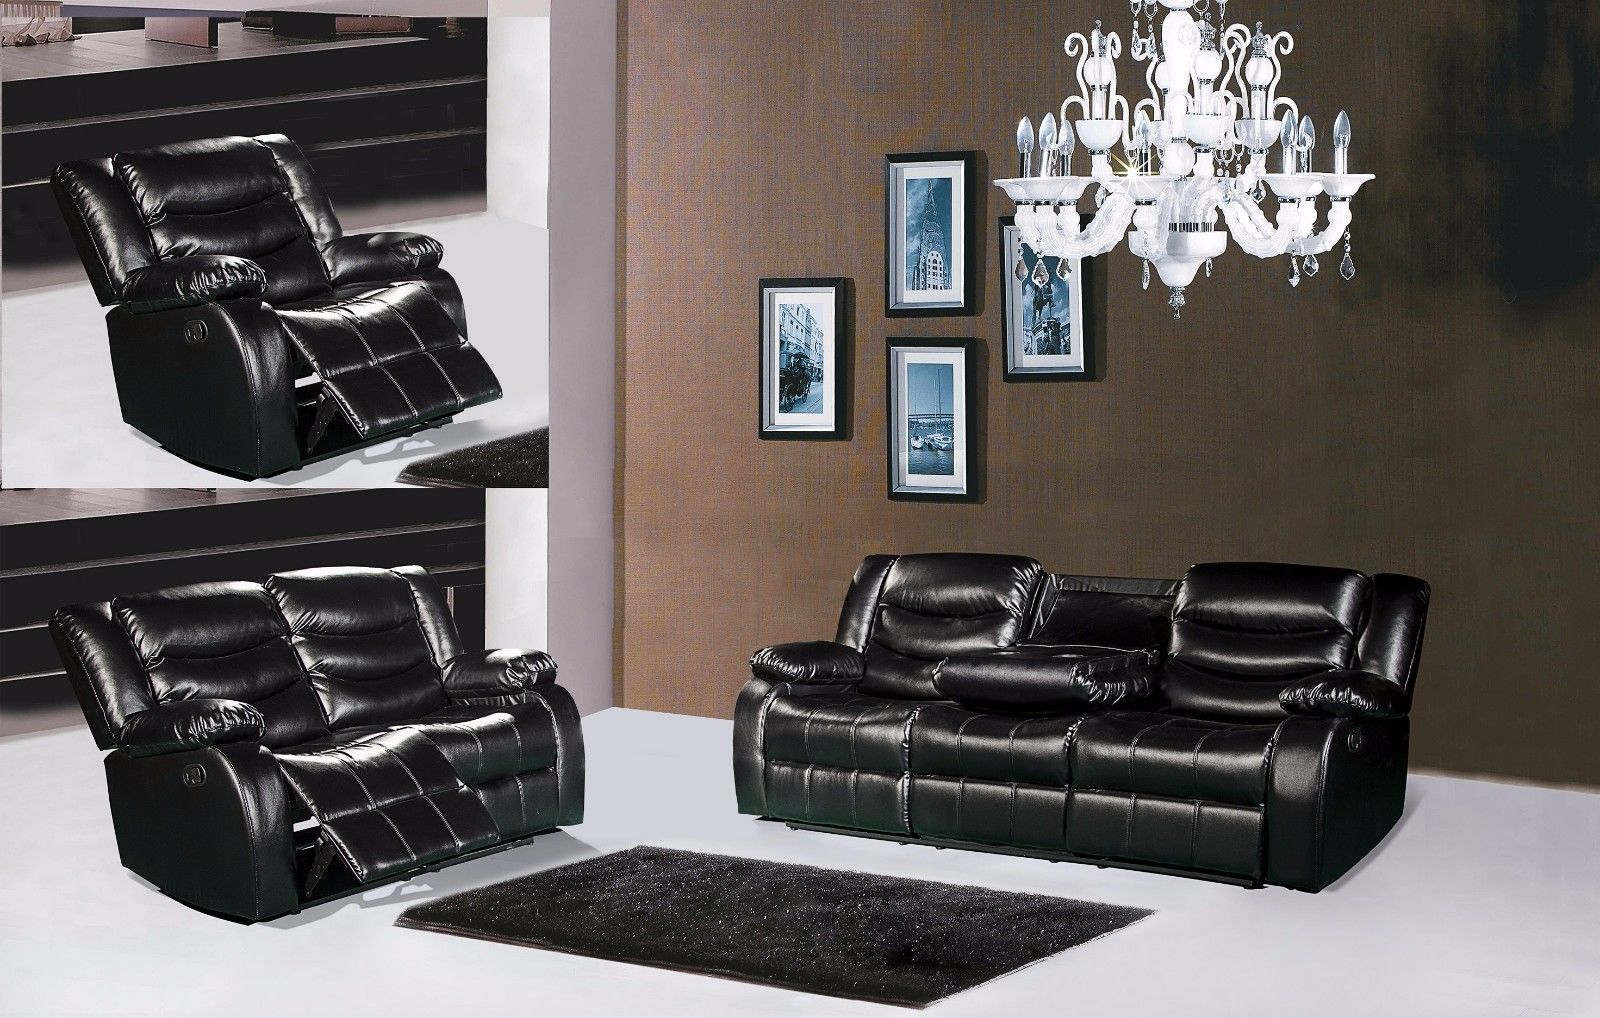 Meridian 644 Bonded Leather Living Room Sofa Set 3pc. Black Contemporary Style